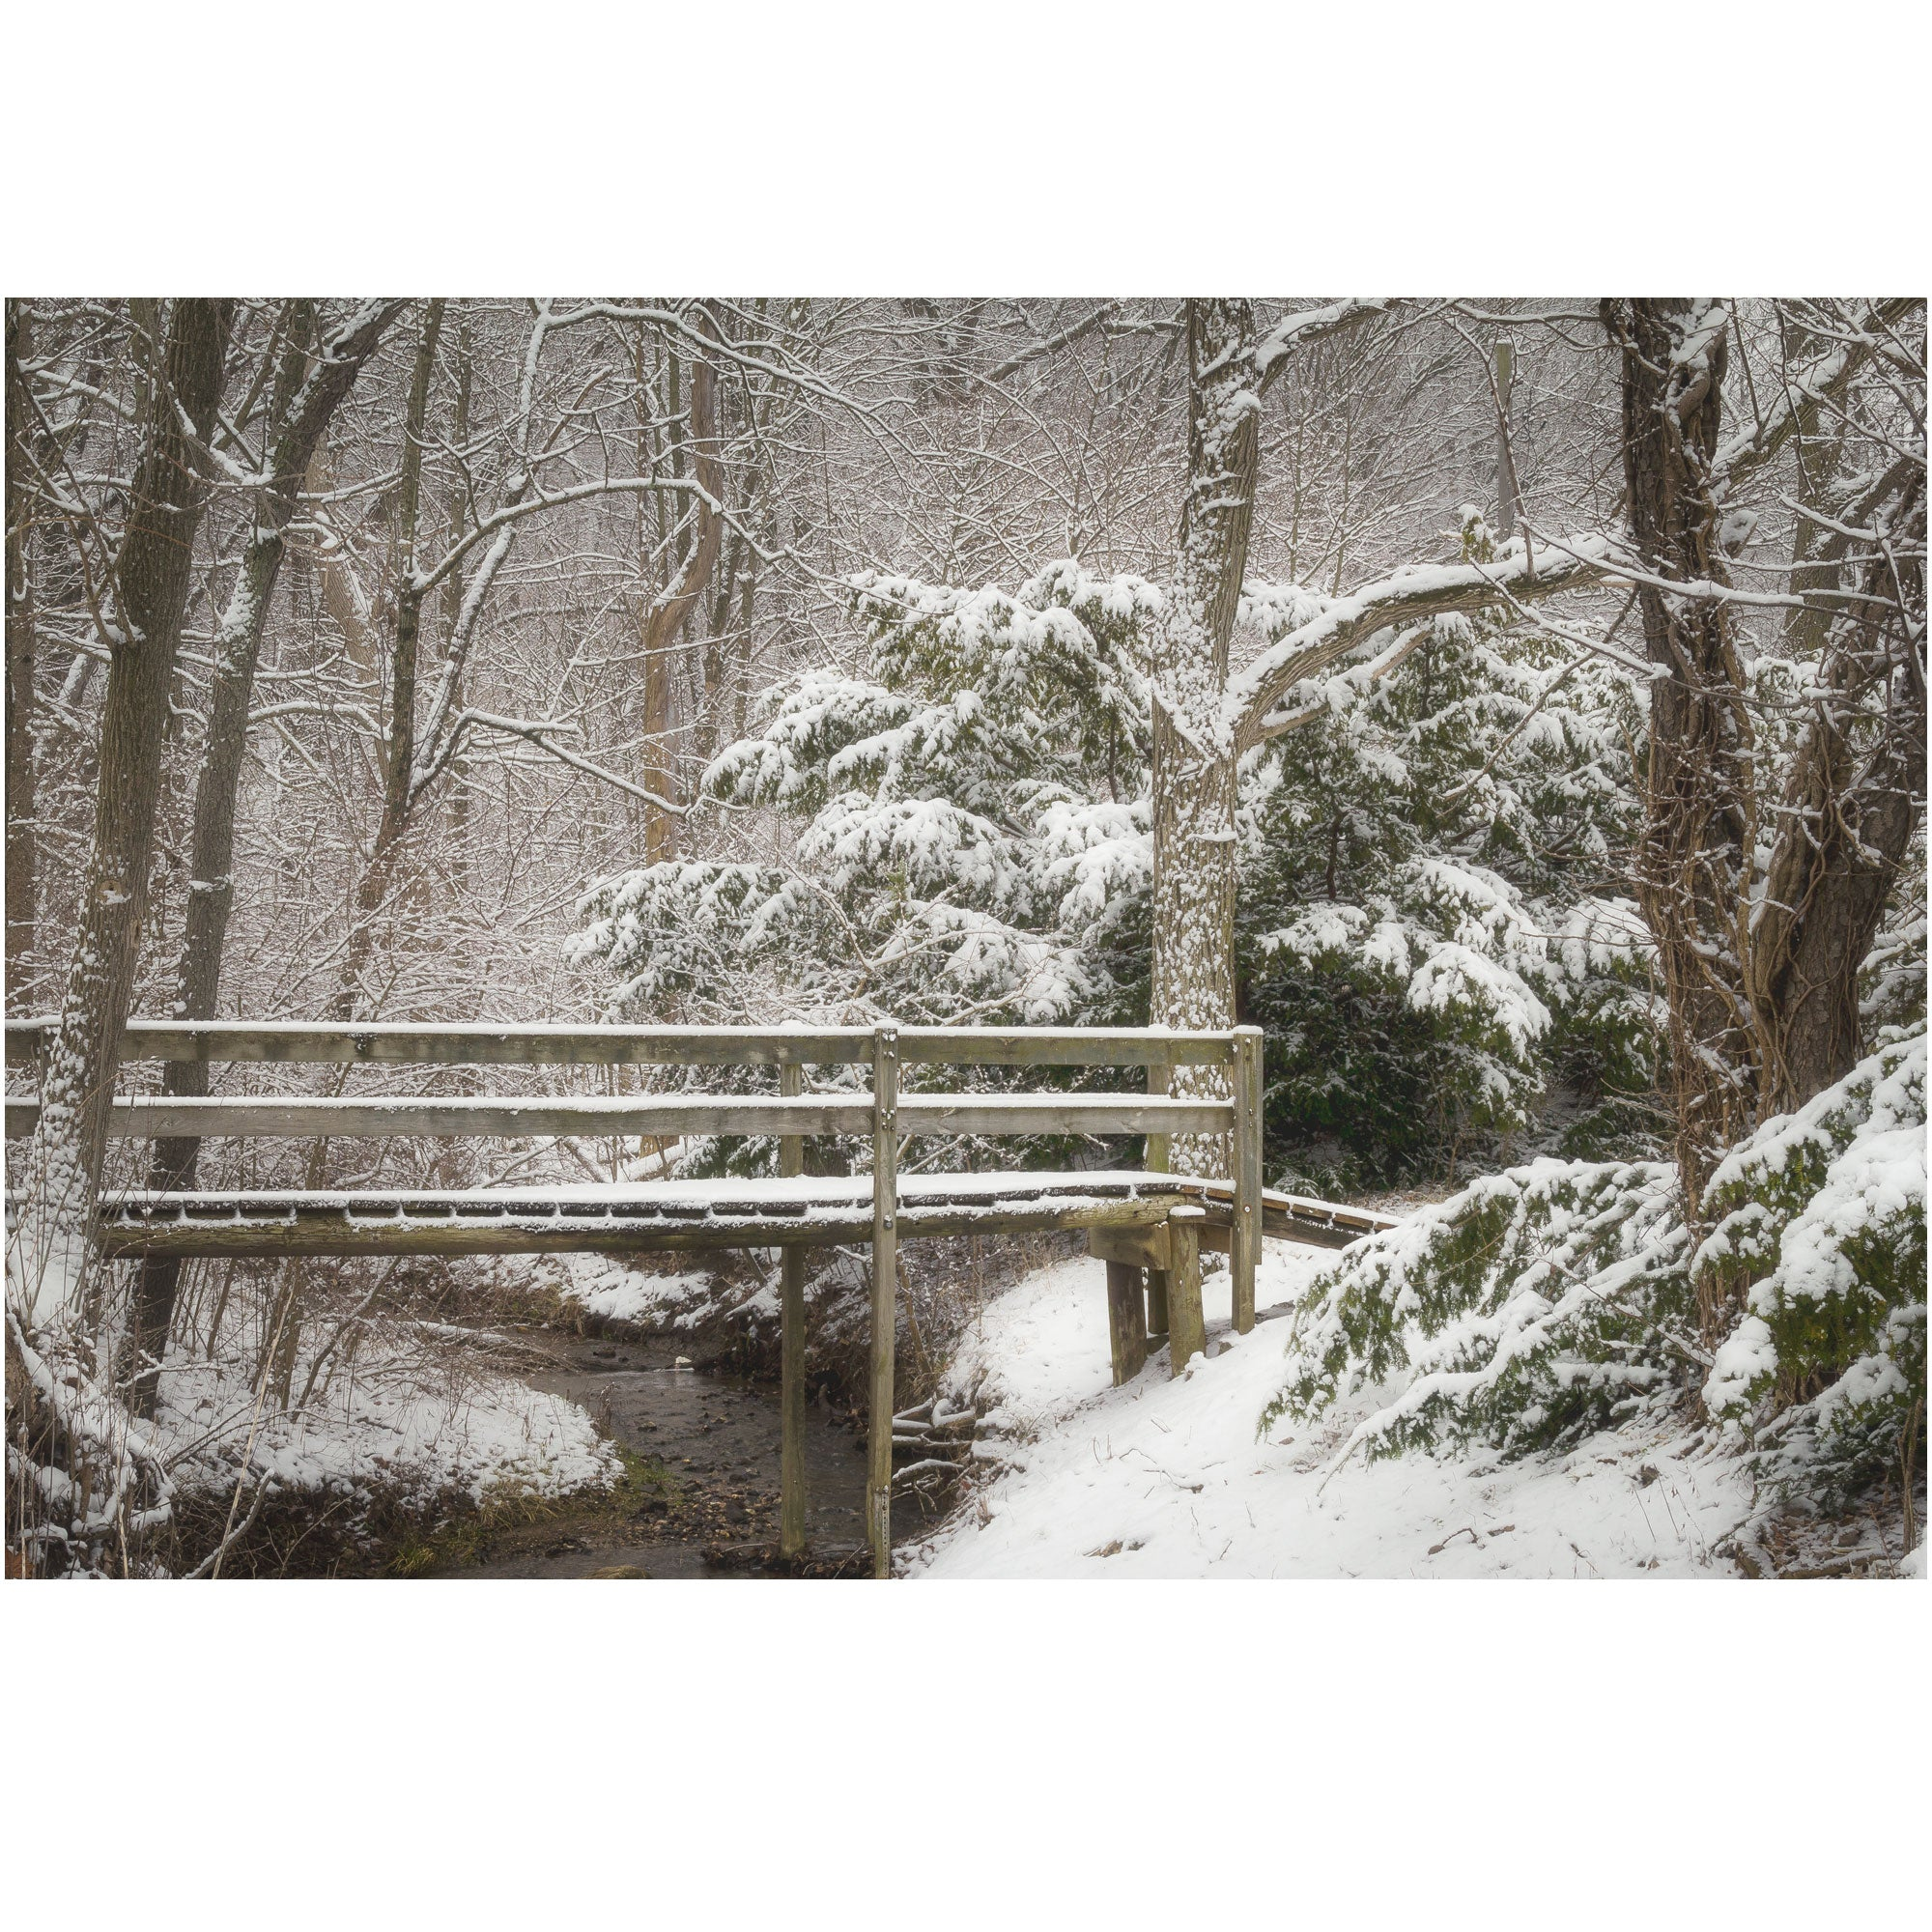 winter scene of a bridge at kiser lake in ohio